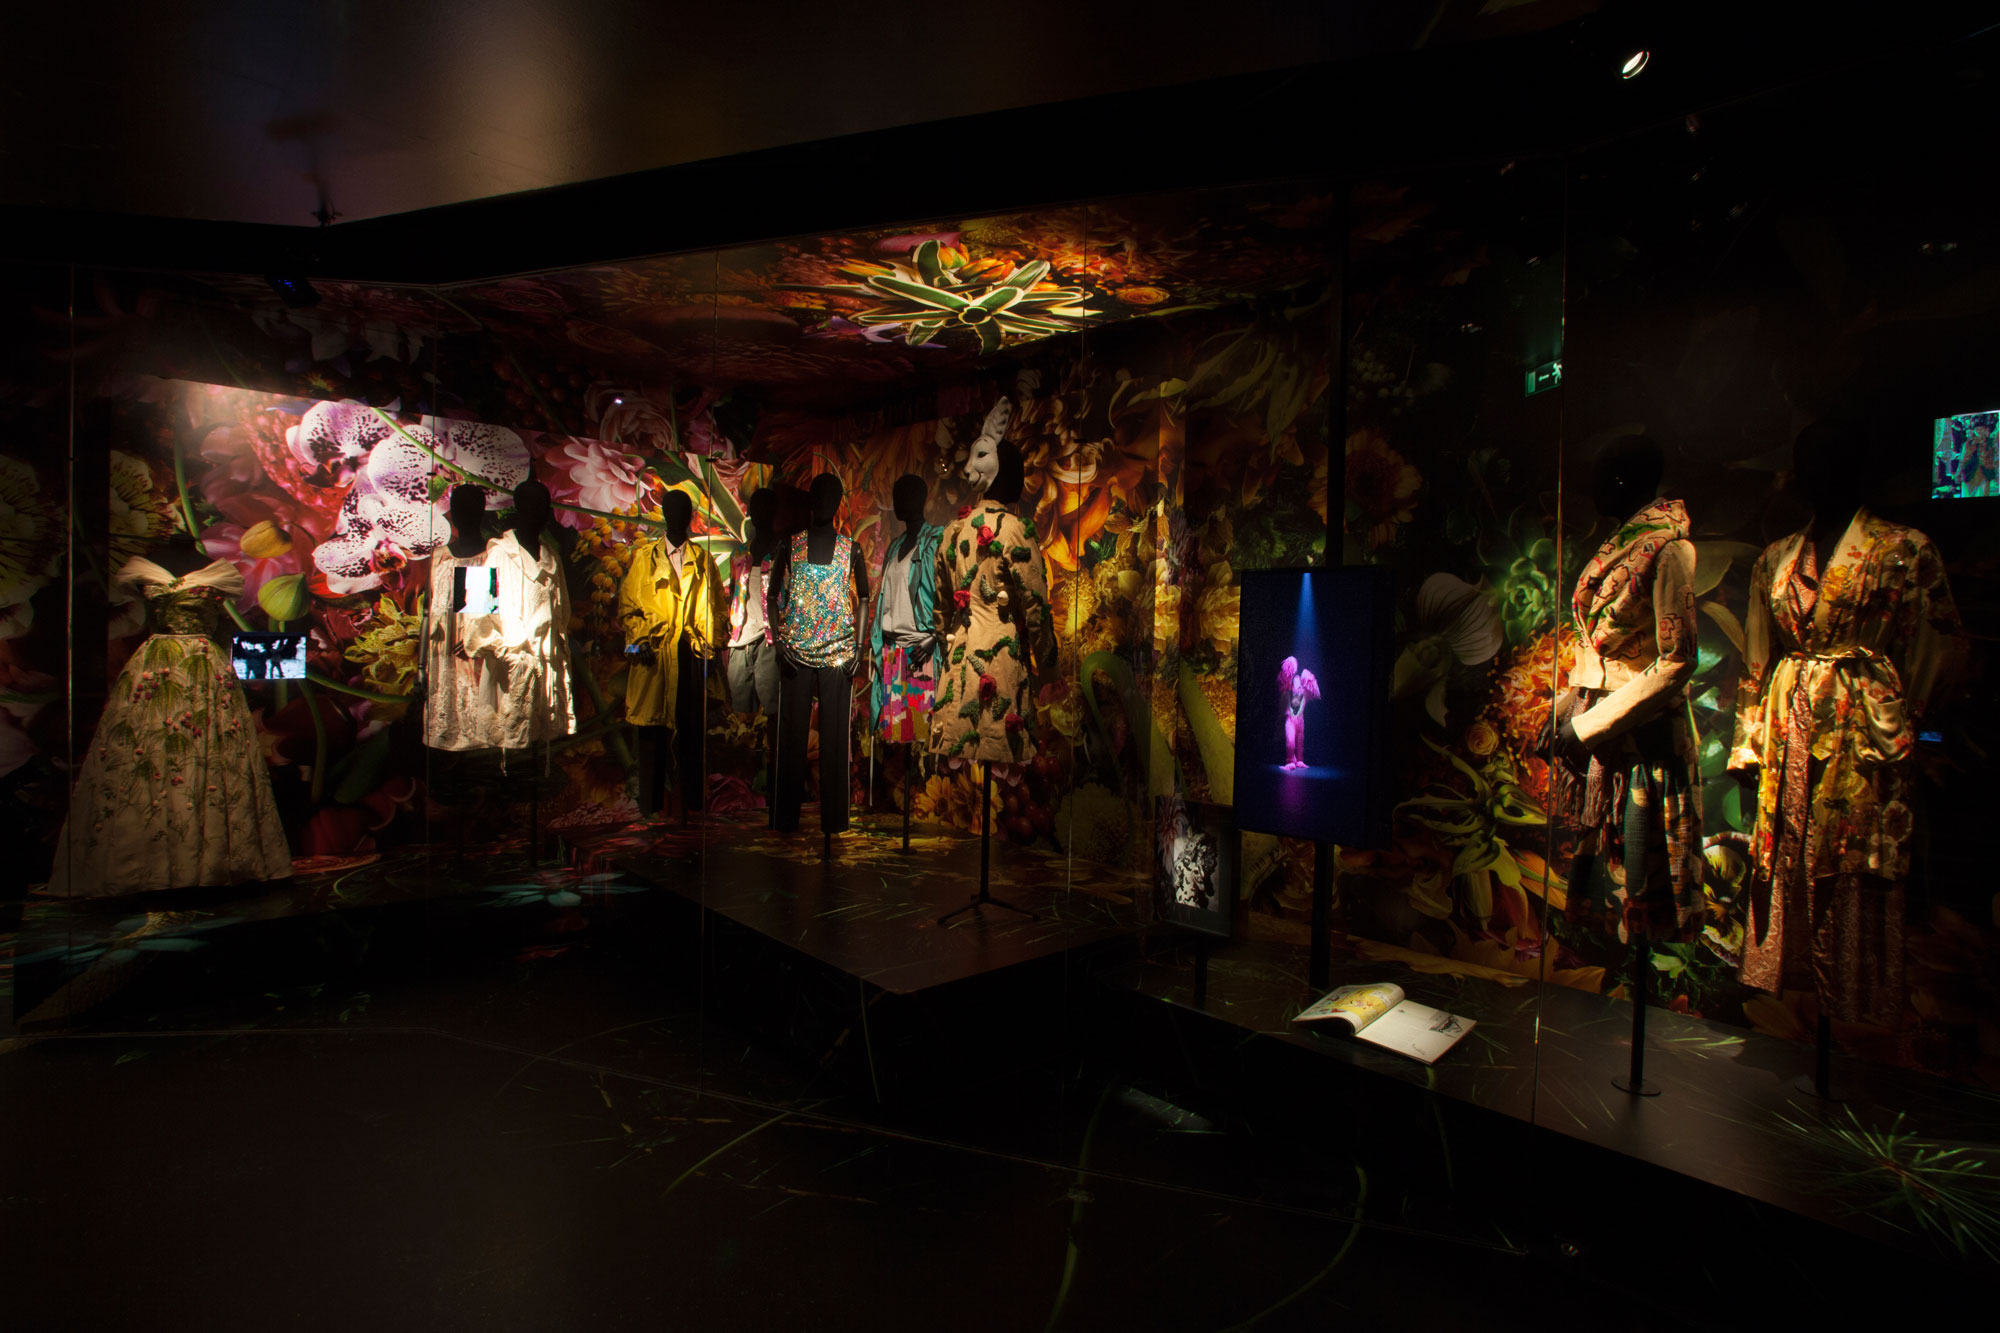 dries-van-noten-exposition-paris-arts-décoratifs-la-critiquerie-2014